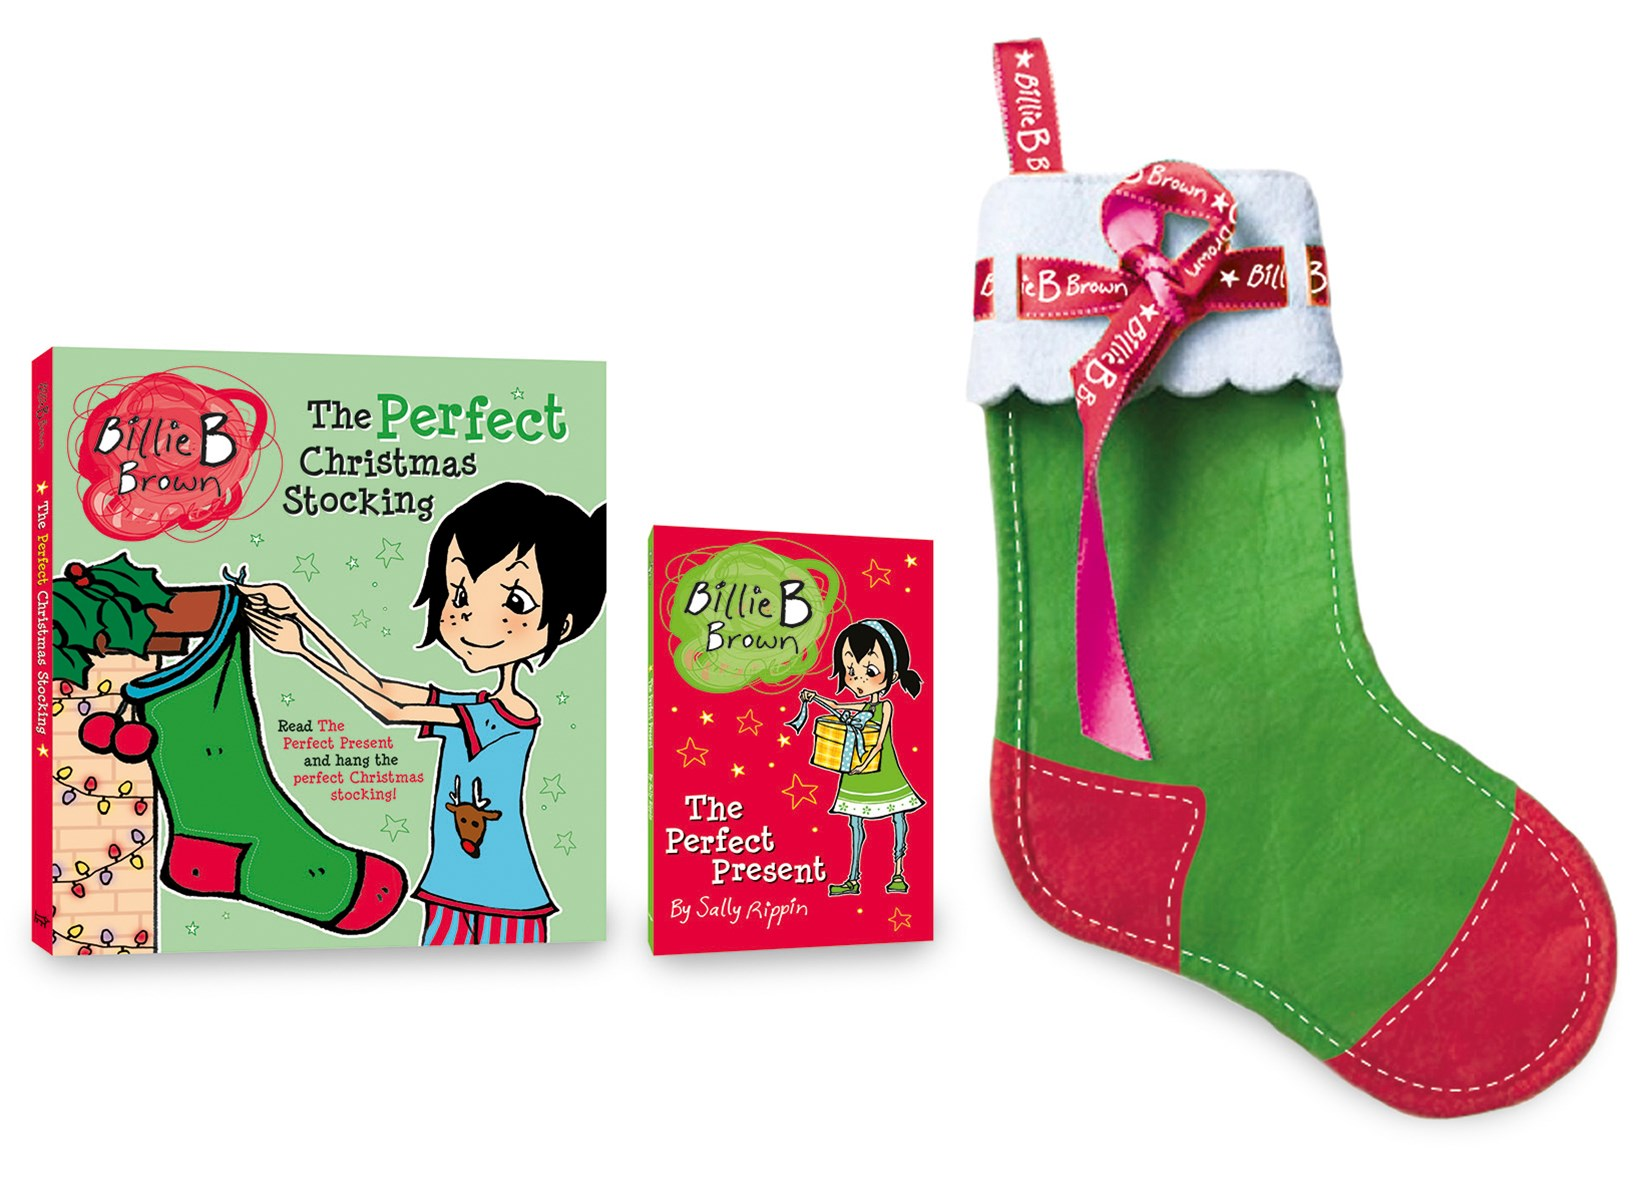 The Perfect Christmas Stocking